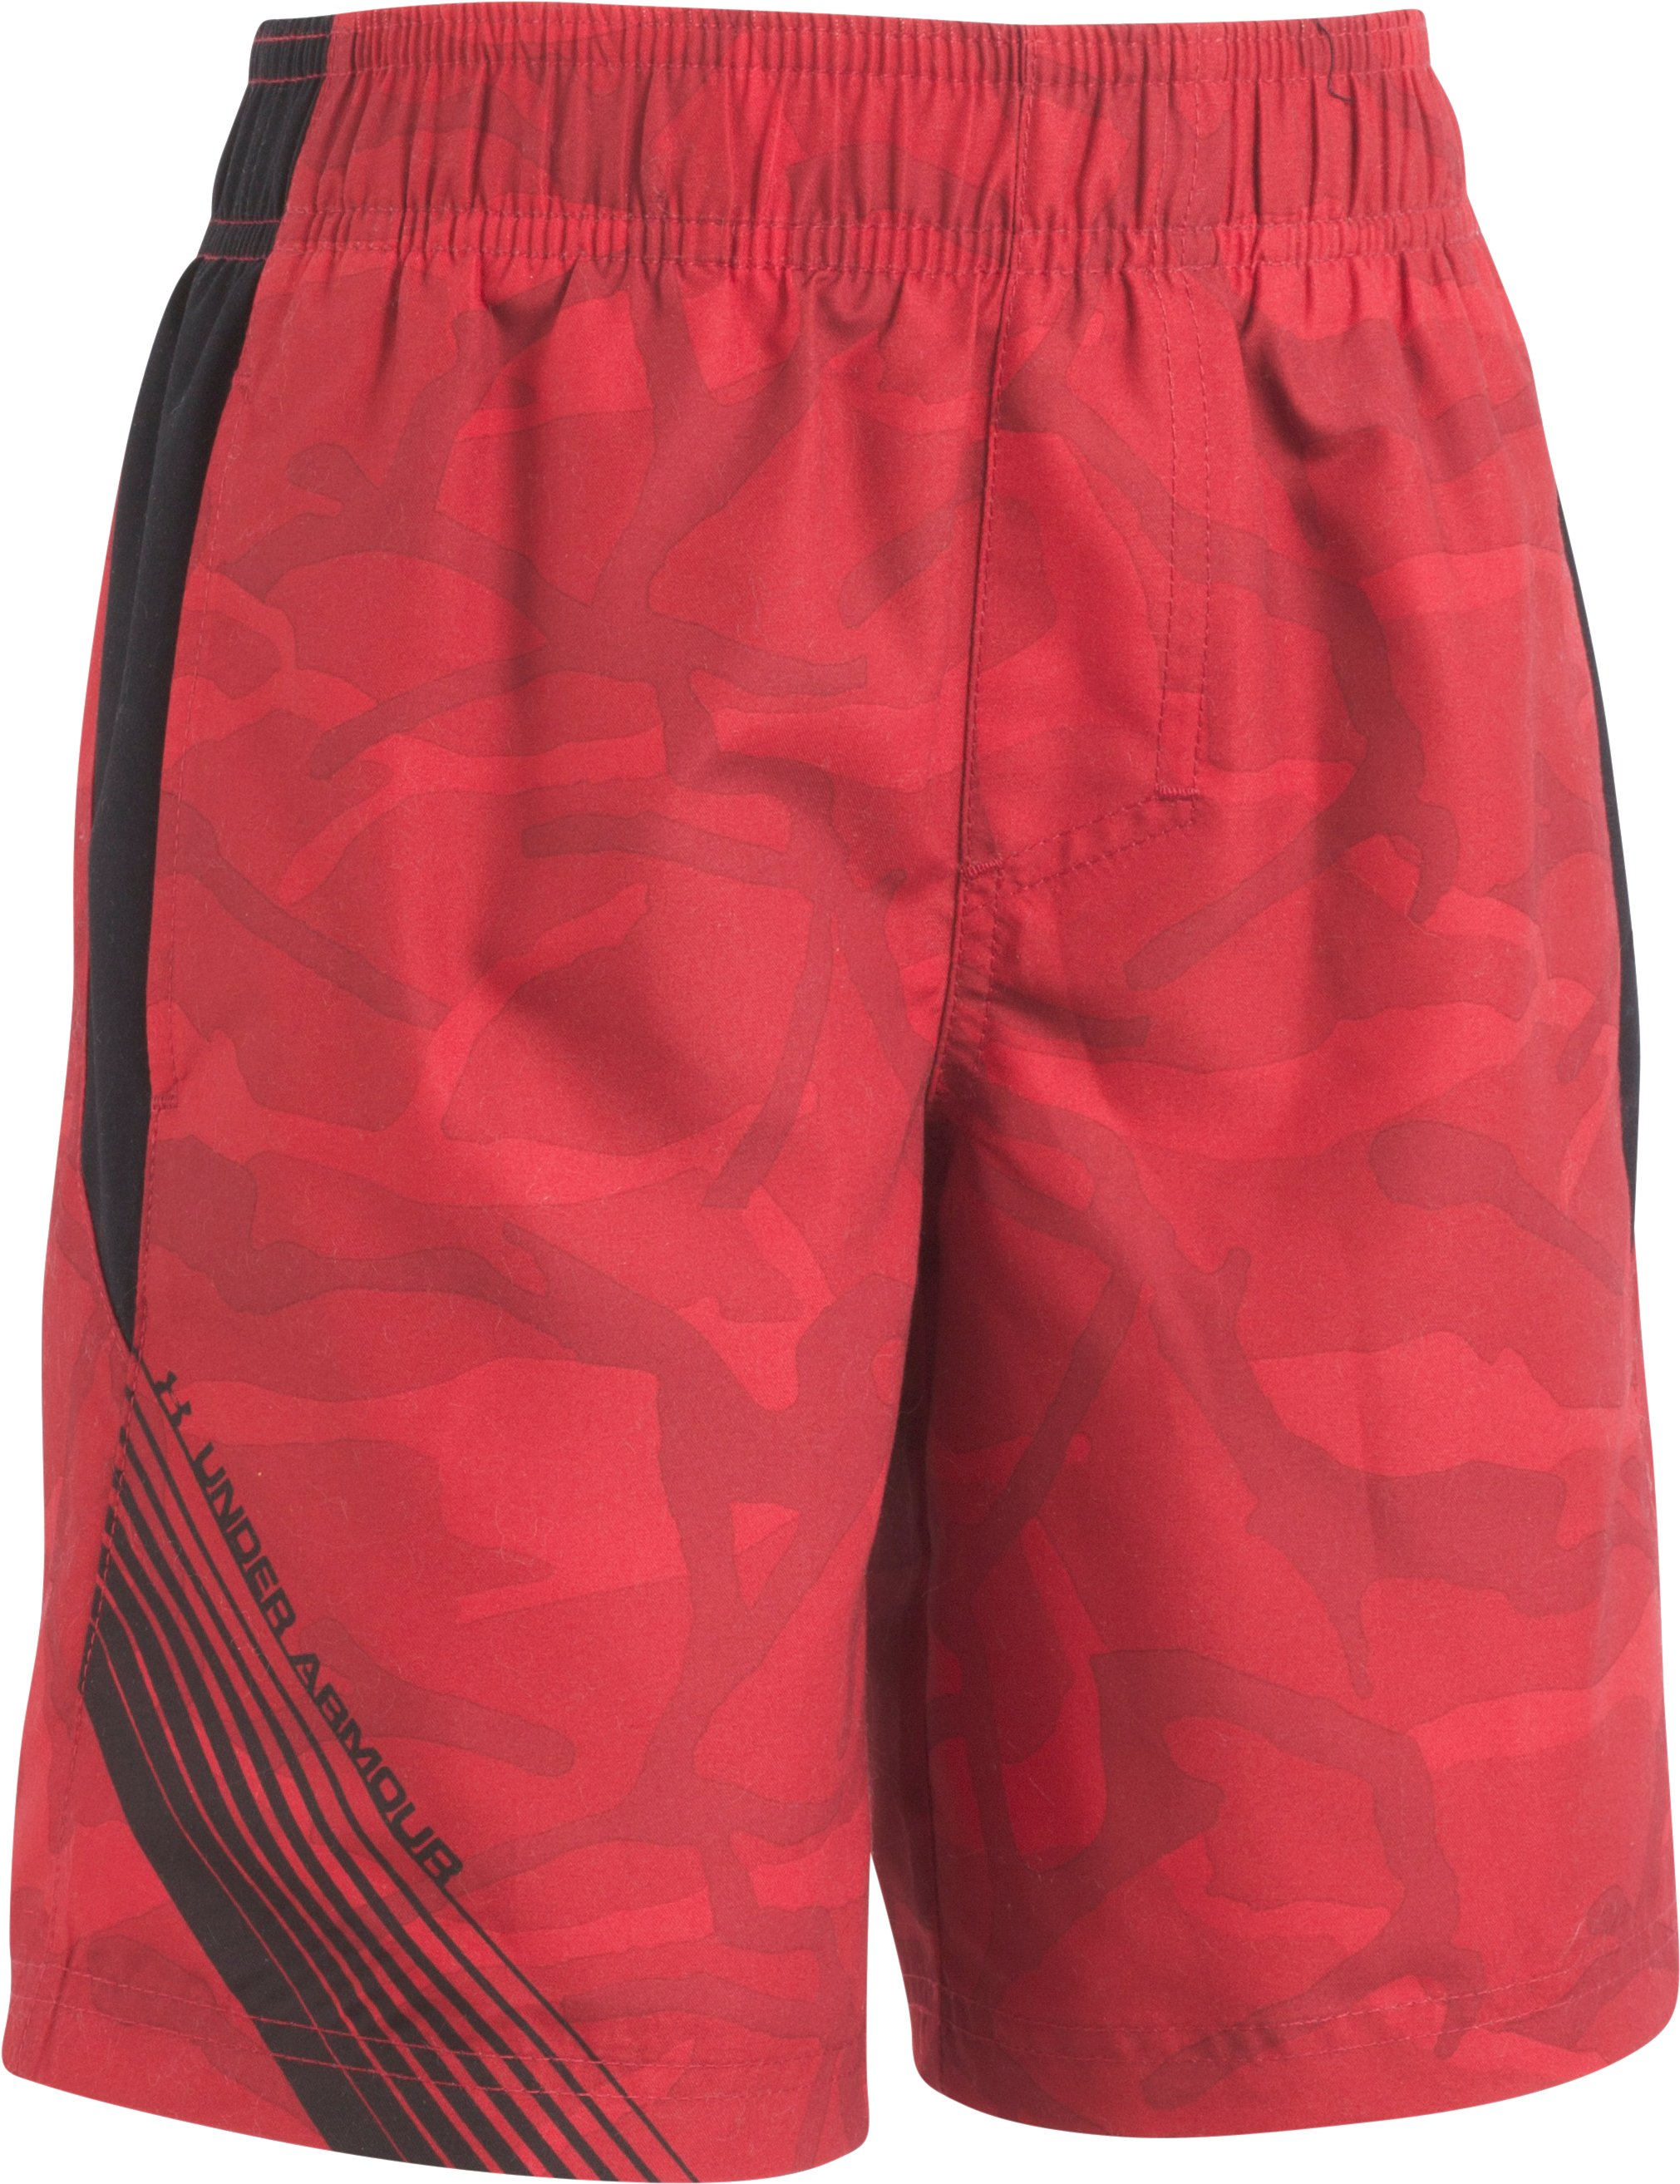 Boys' Pre-School UA Volley Shorts, Red, Laydown